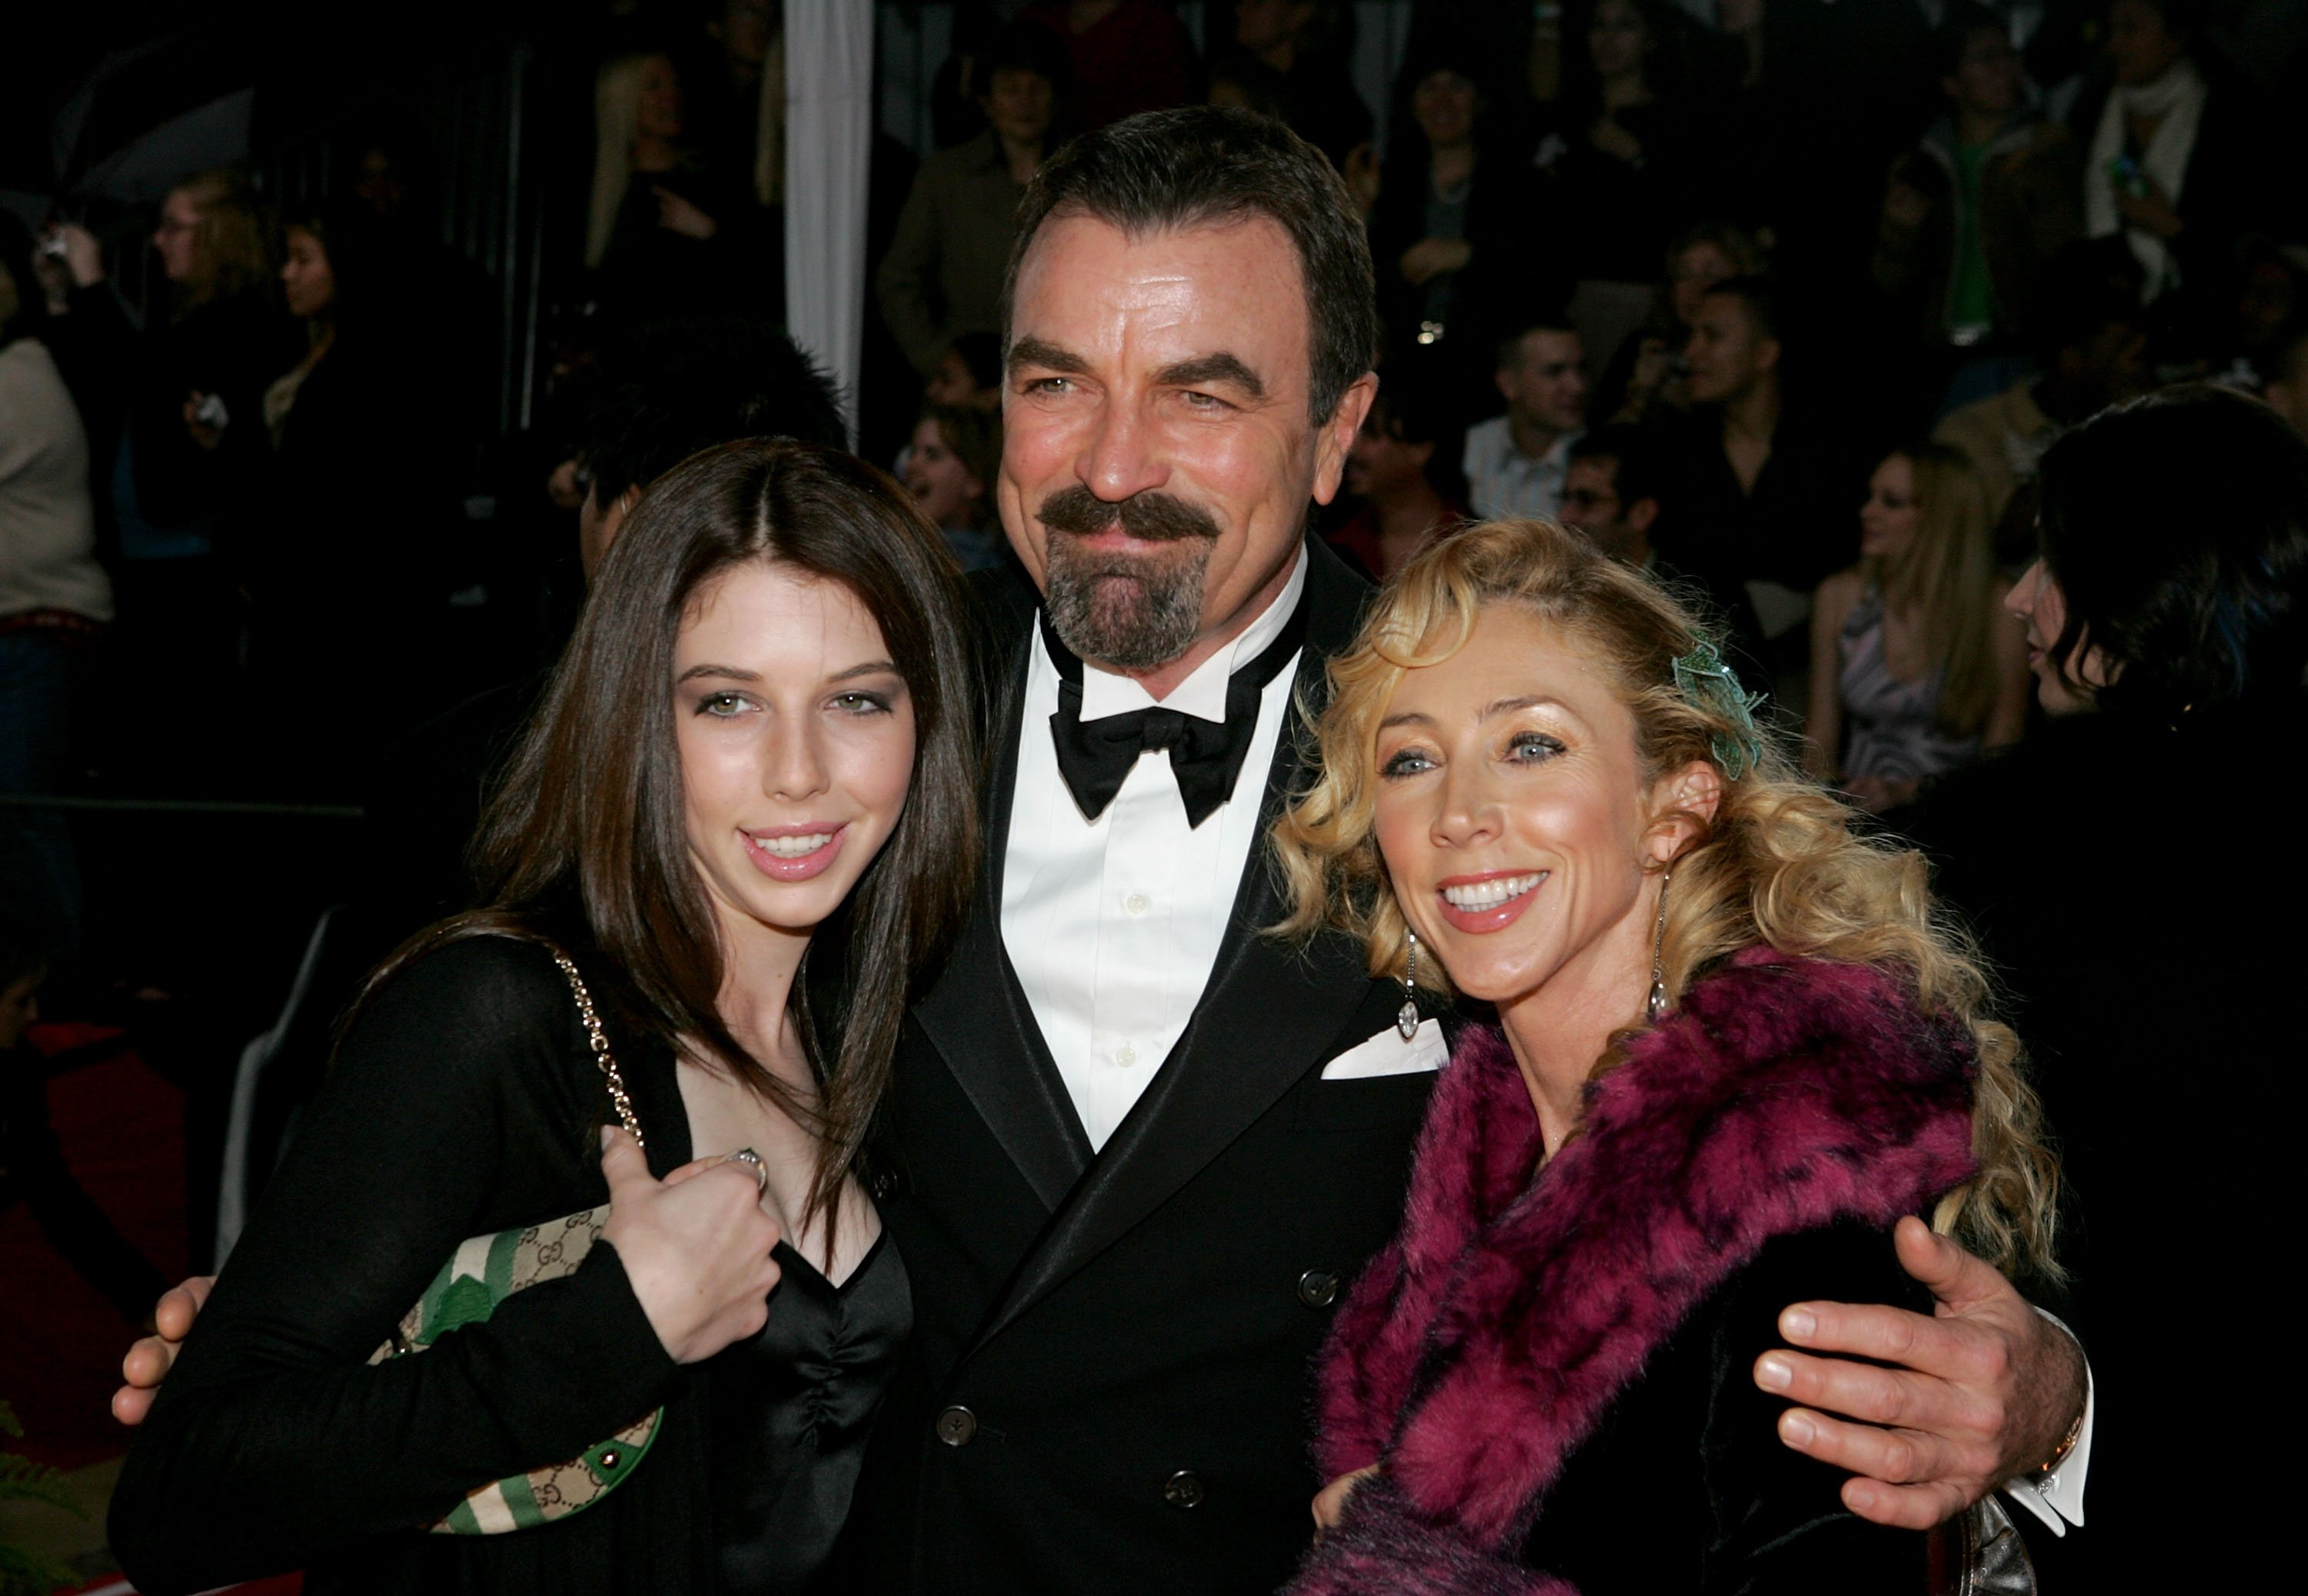 Image Credits: Getty Images | Actor Tom Selleck, pictured with his wife Jillie and daughter, Hannah